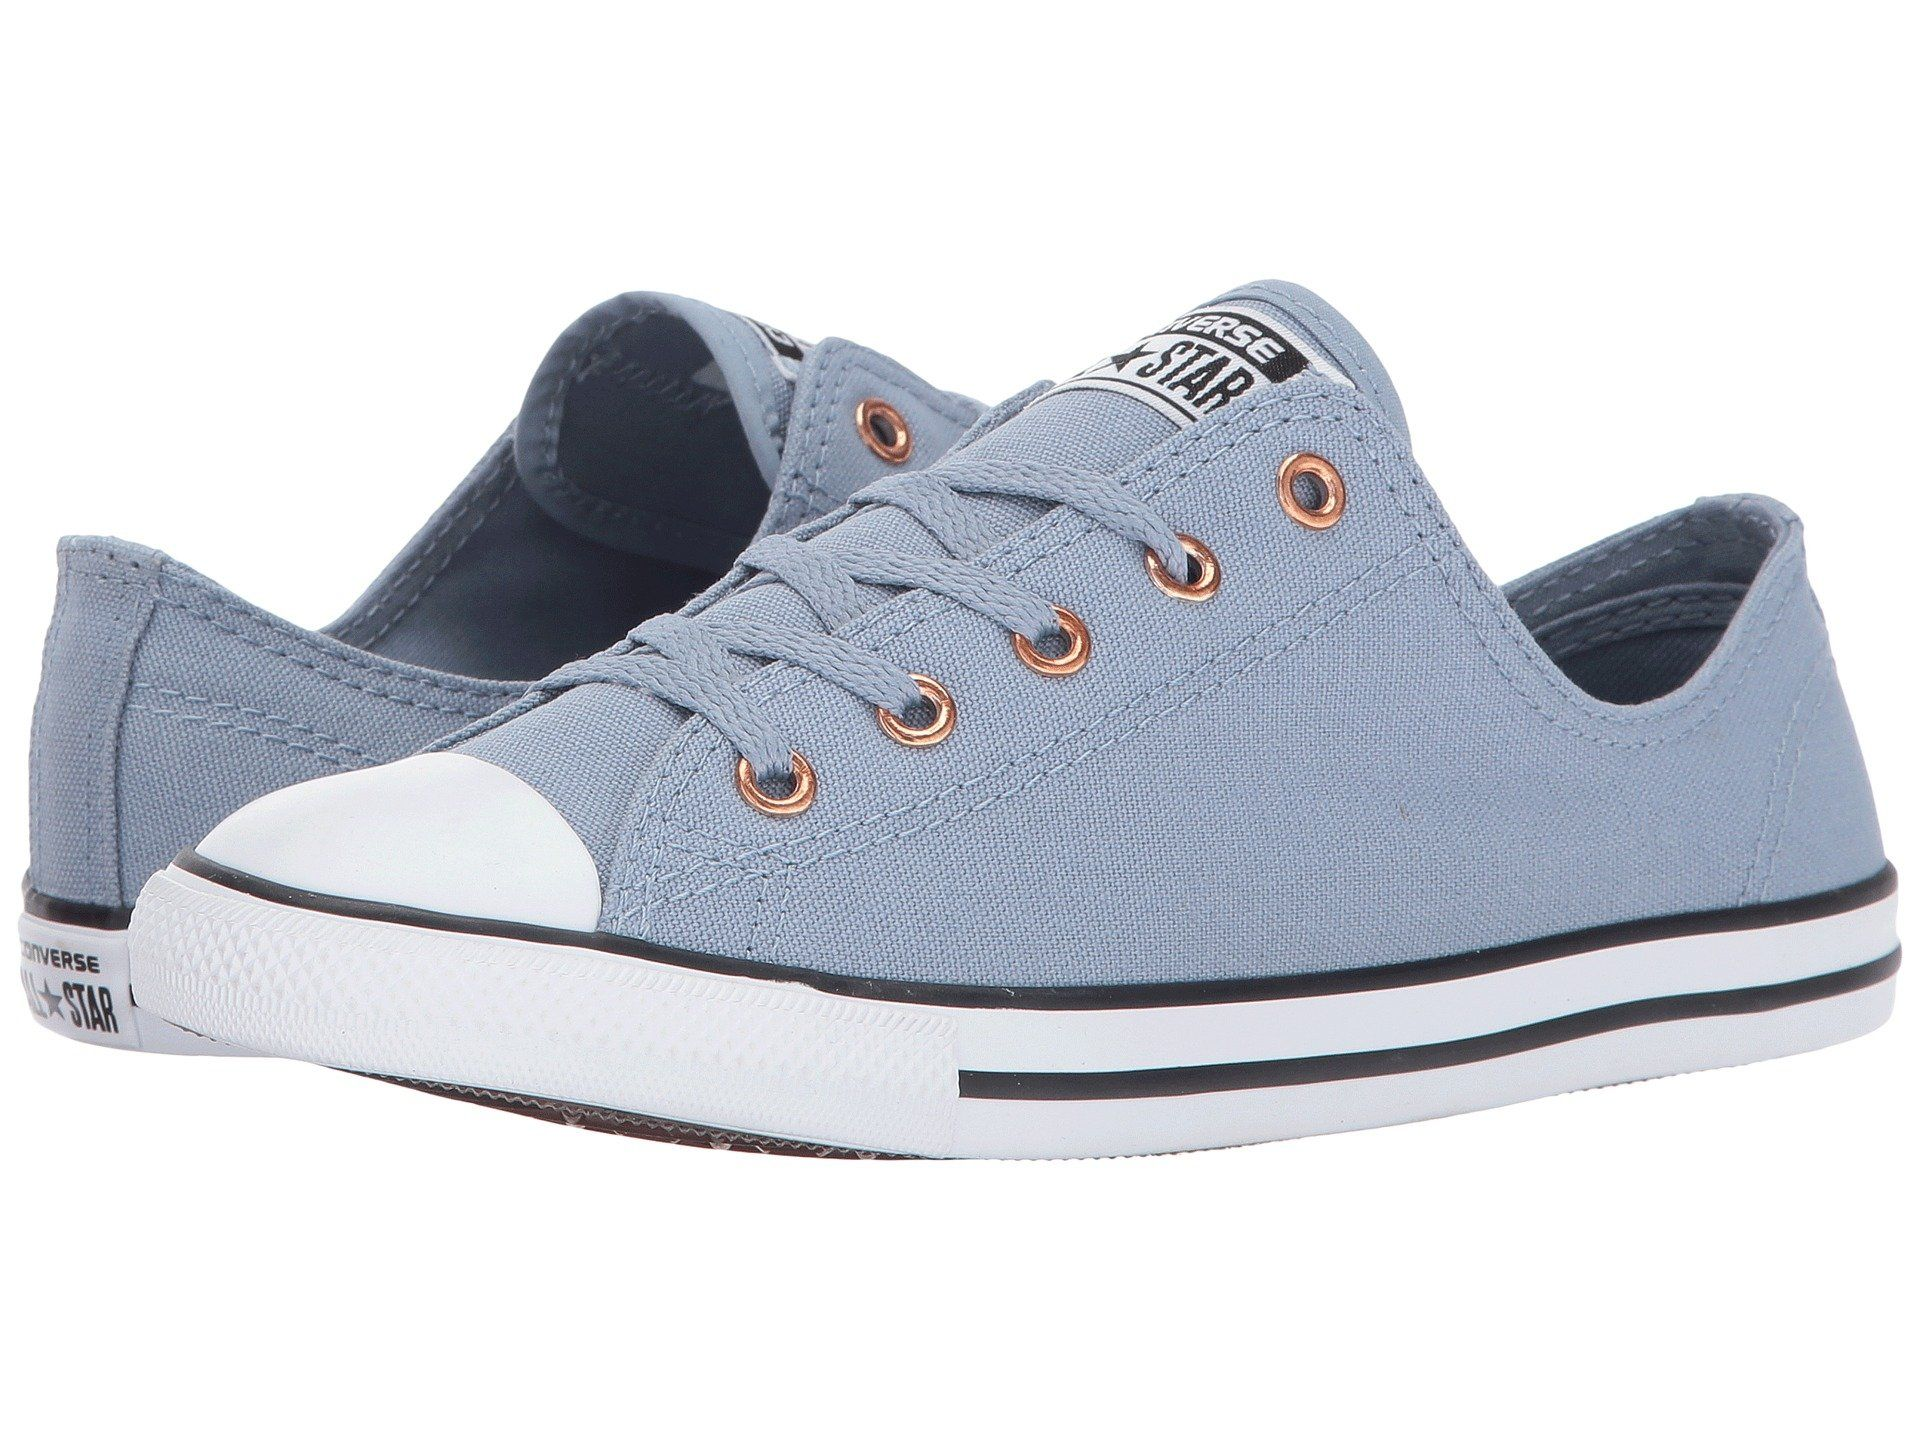 5beeac63ae85 CONVERSE Chuck Taylor All Star Dainty - Ox.  converse  shoes